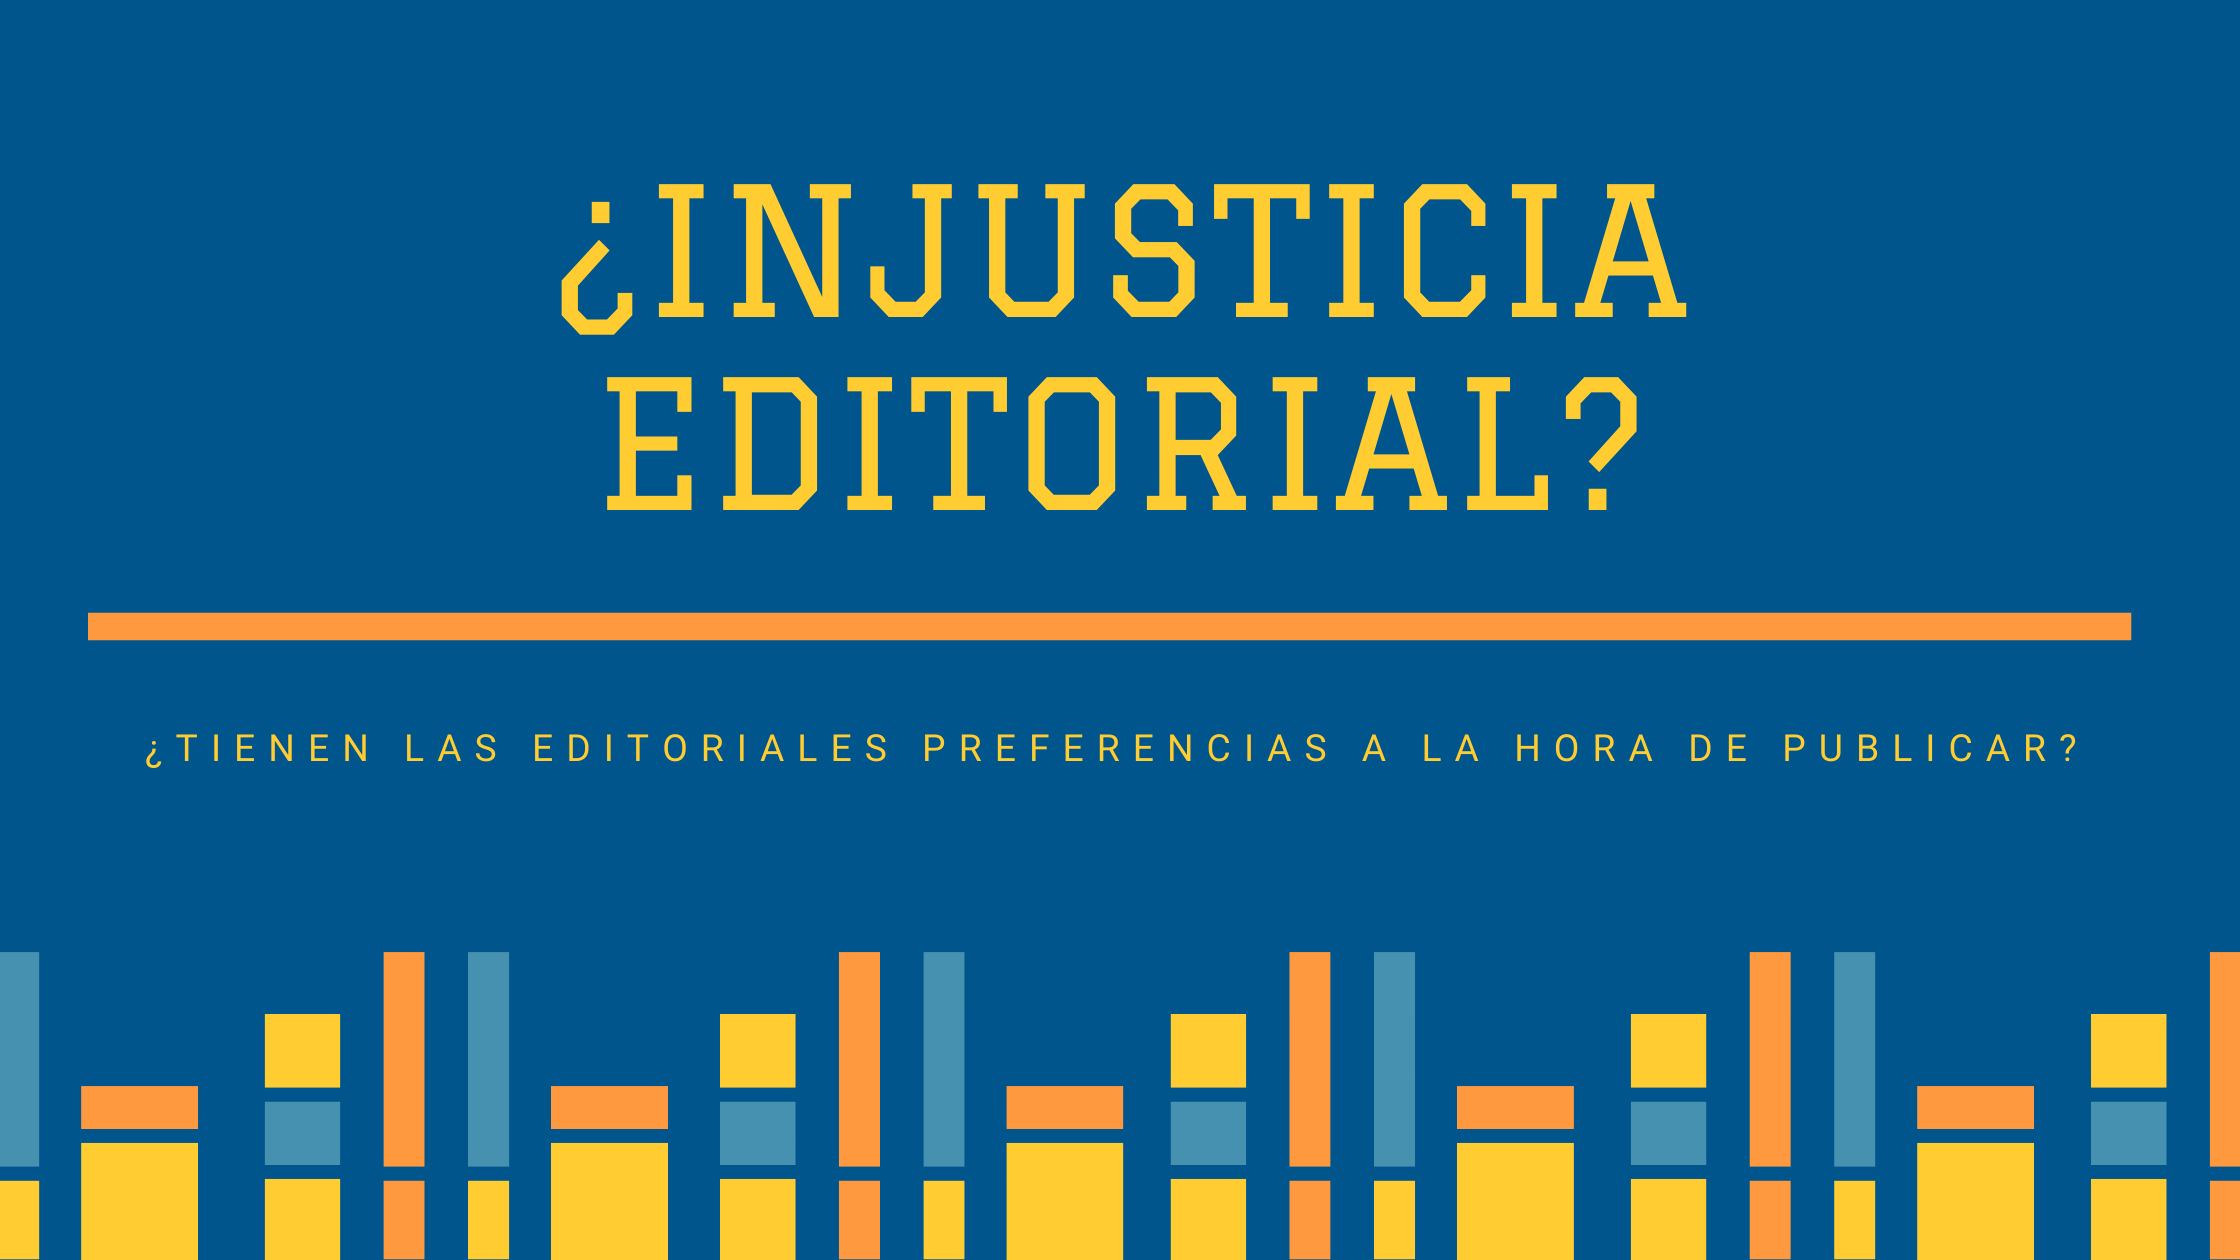 Injusticia editorial?